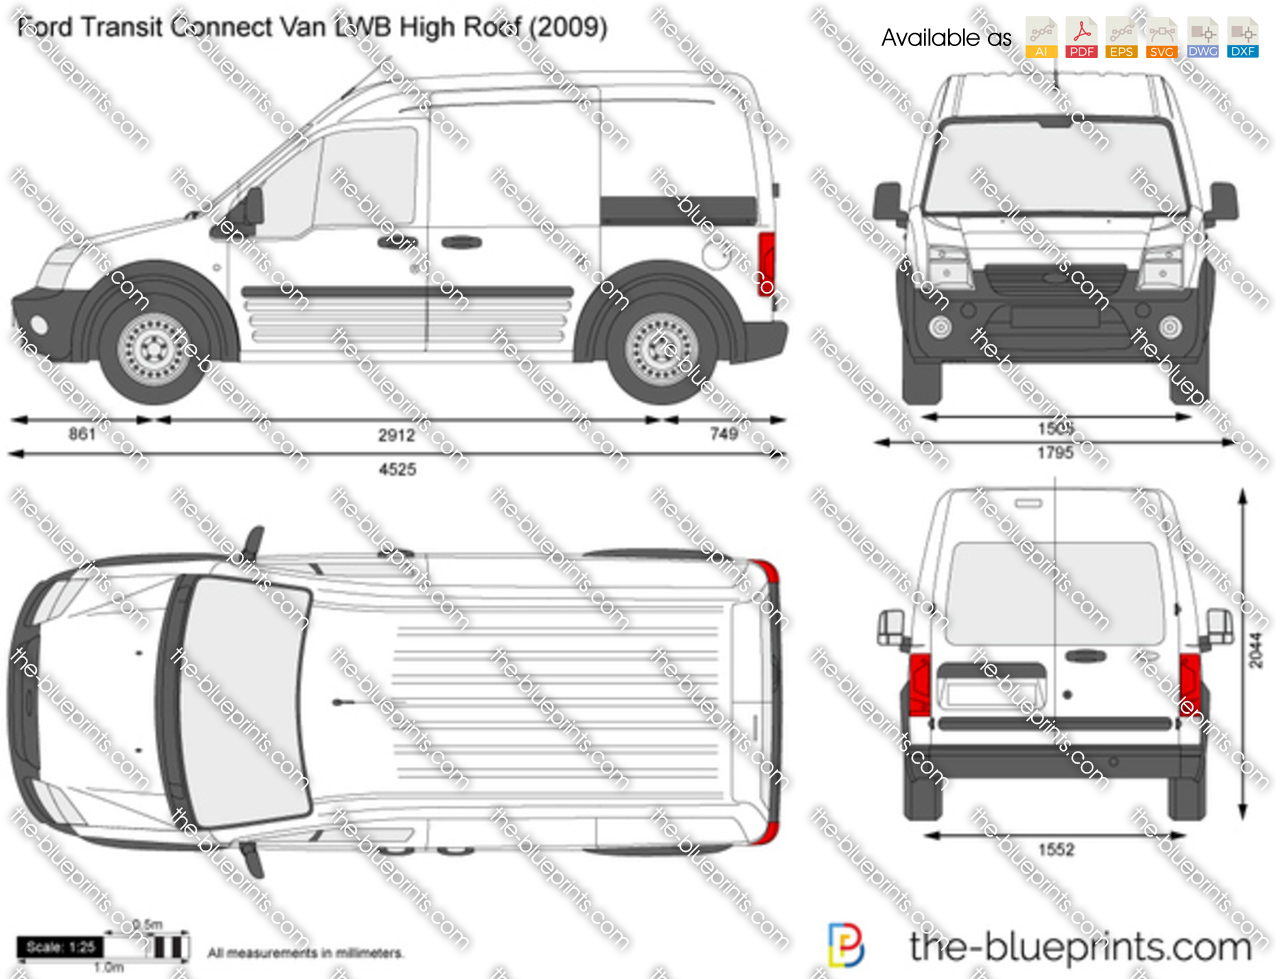 Ford Transit Connect Van LWB High Roof 2004